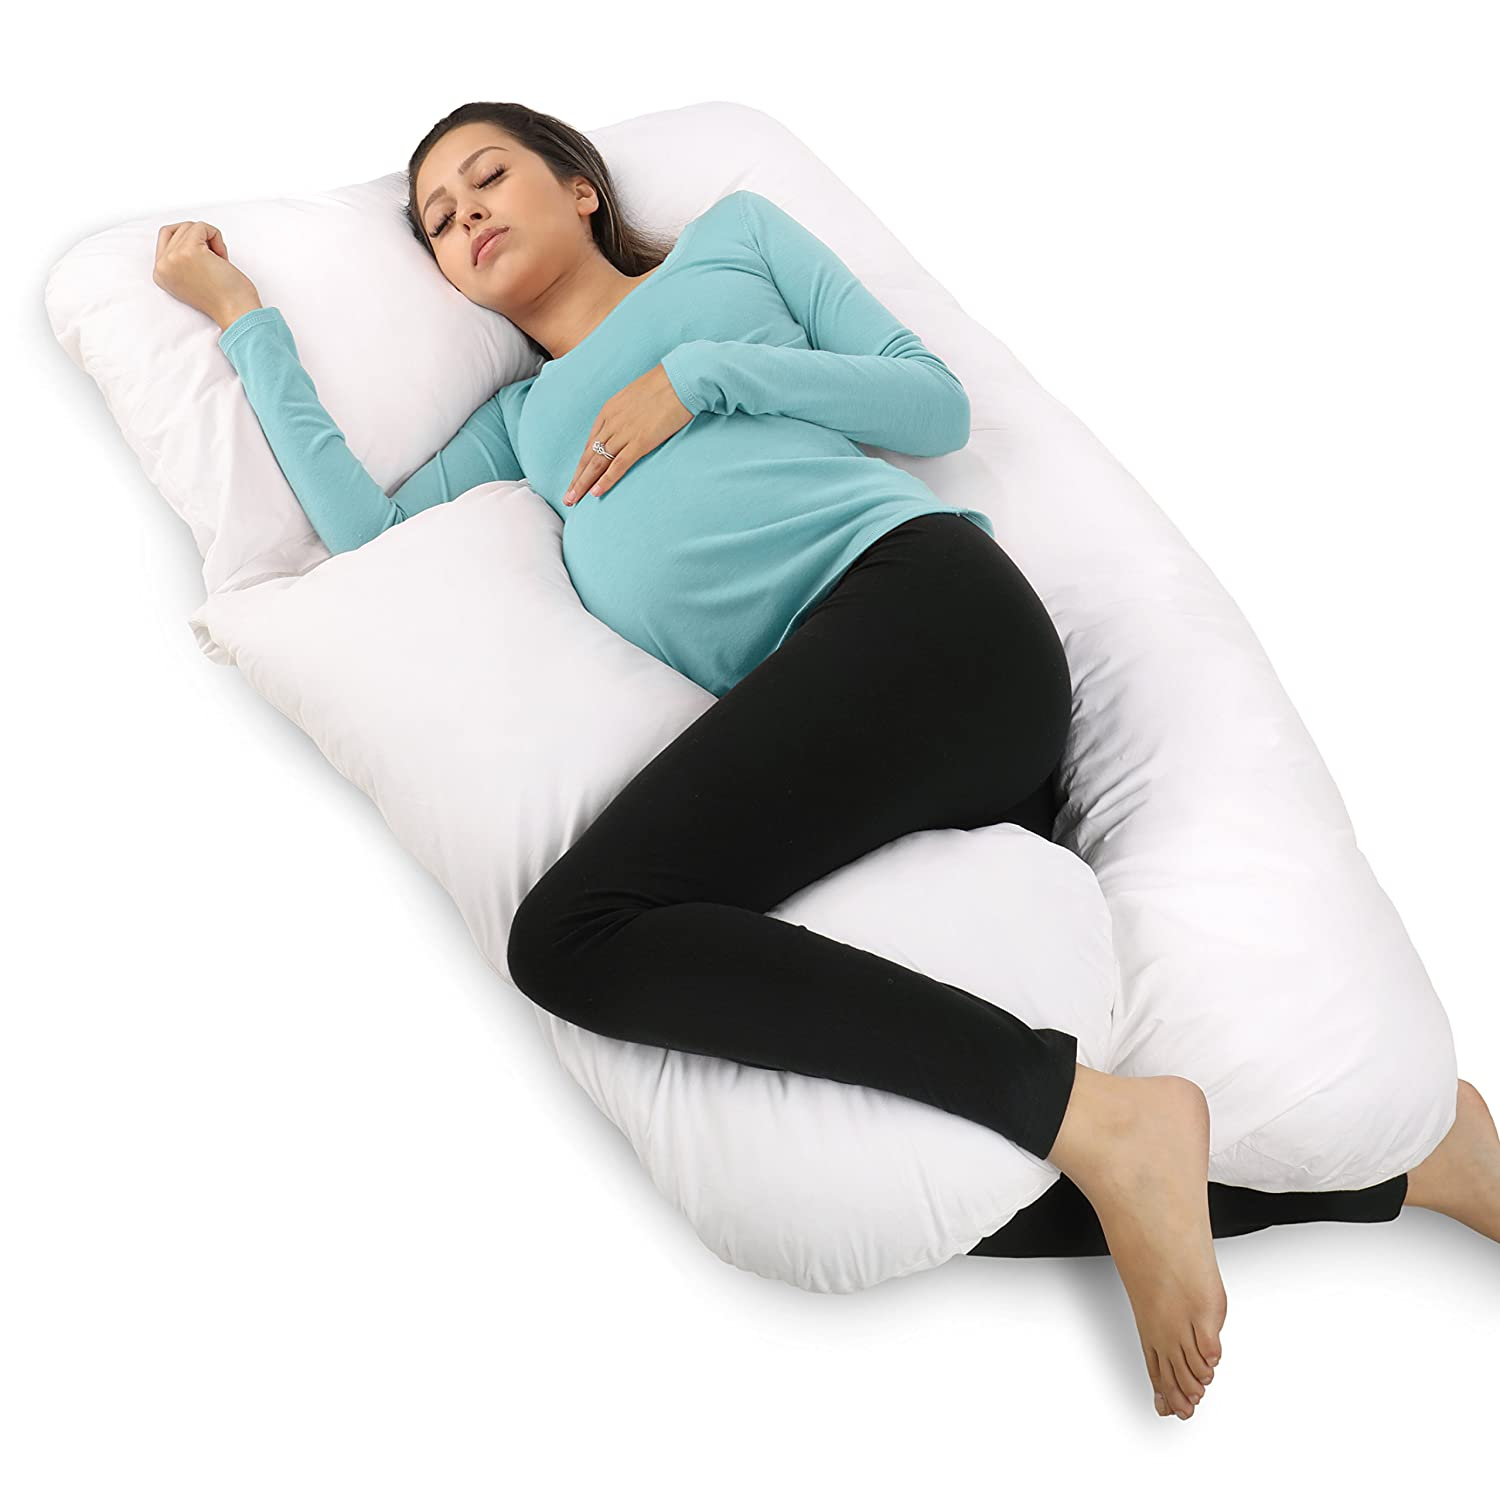 removable best type body pillow women sleepers product pillows pregnant comfortable pregnancy side u for color